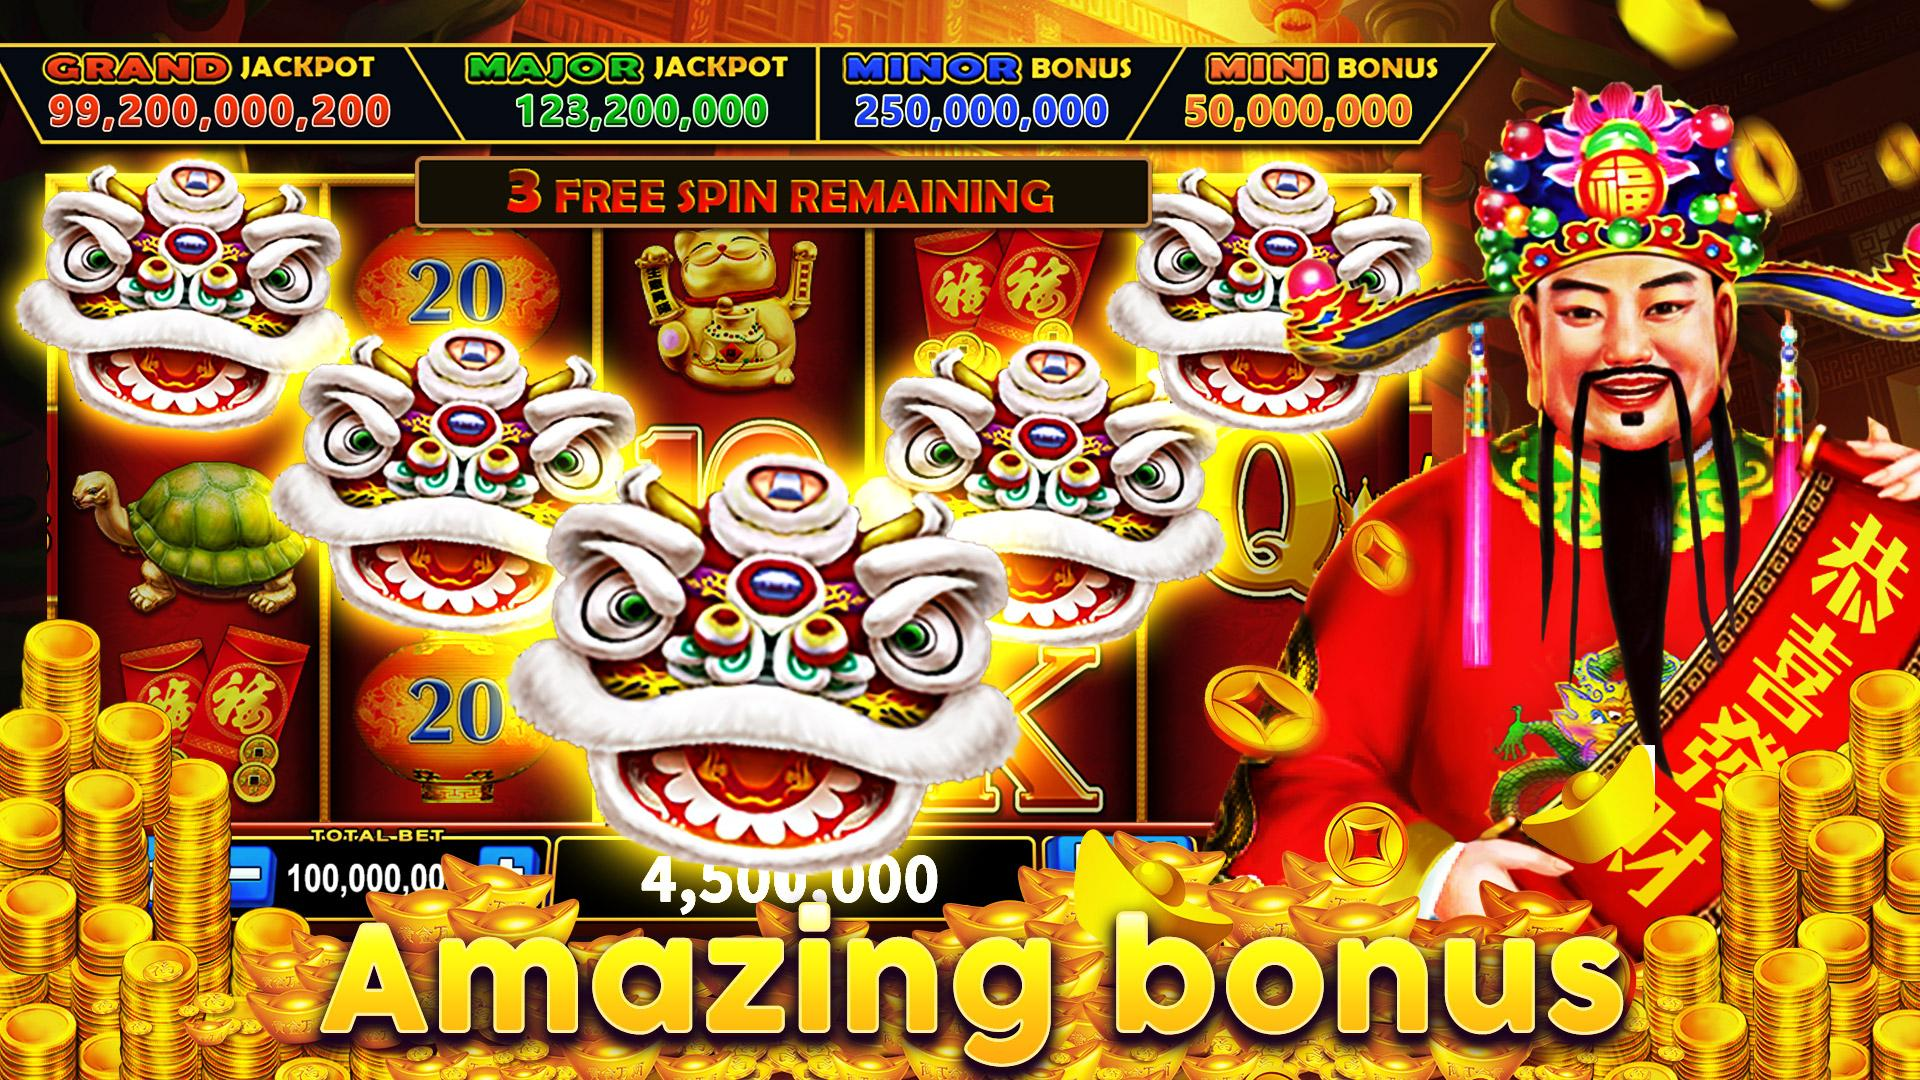 Vegas Casino Slots 2020 - 2,000,000 Free Coins 1.0.34 Screenshot 20